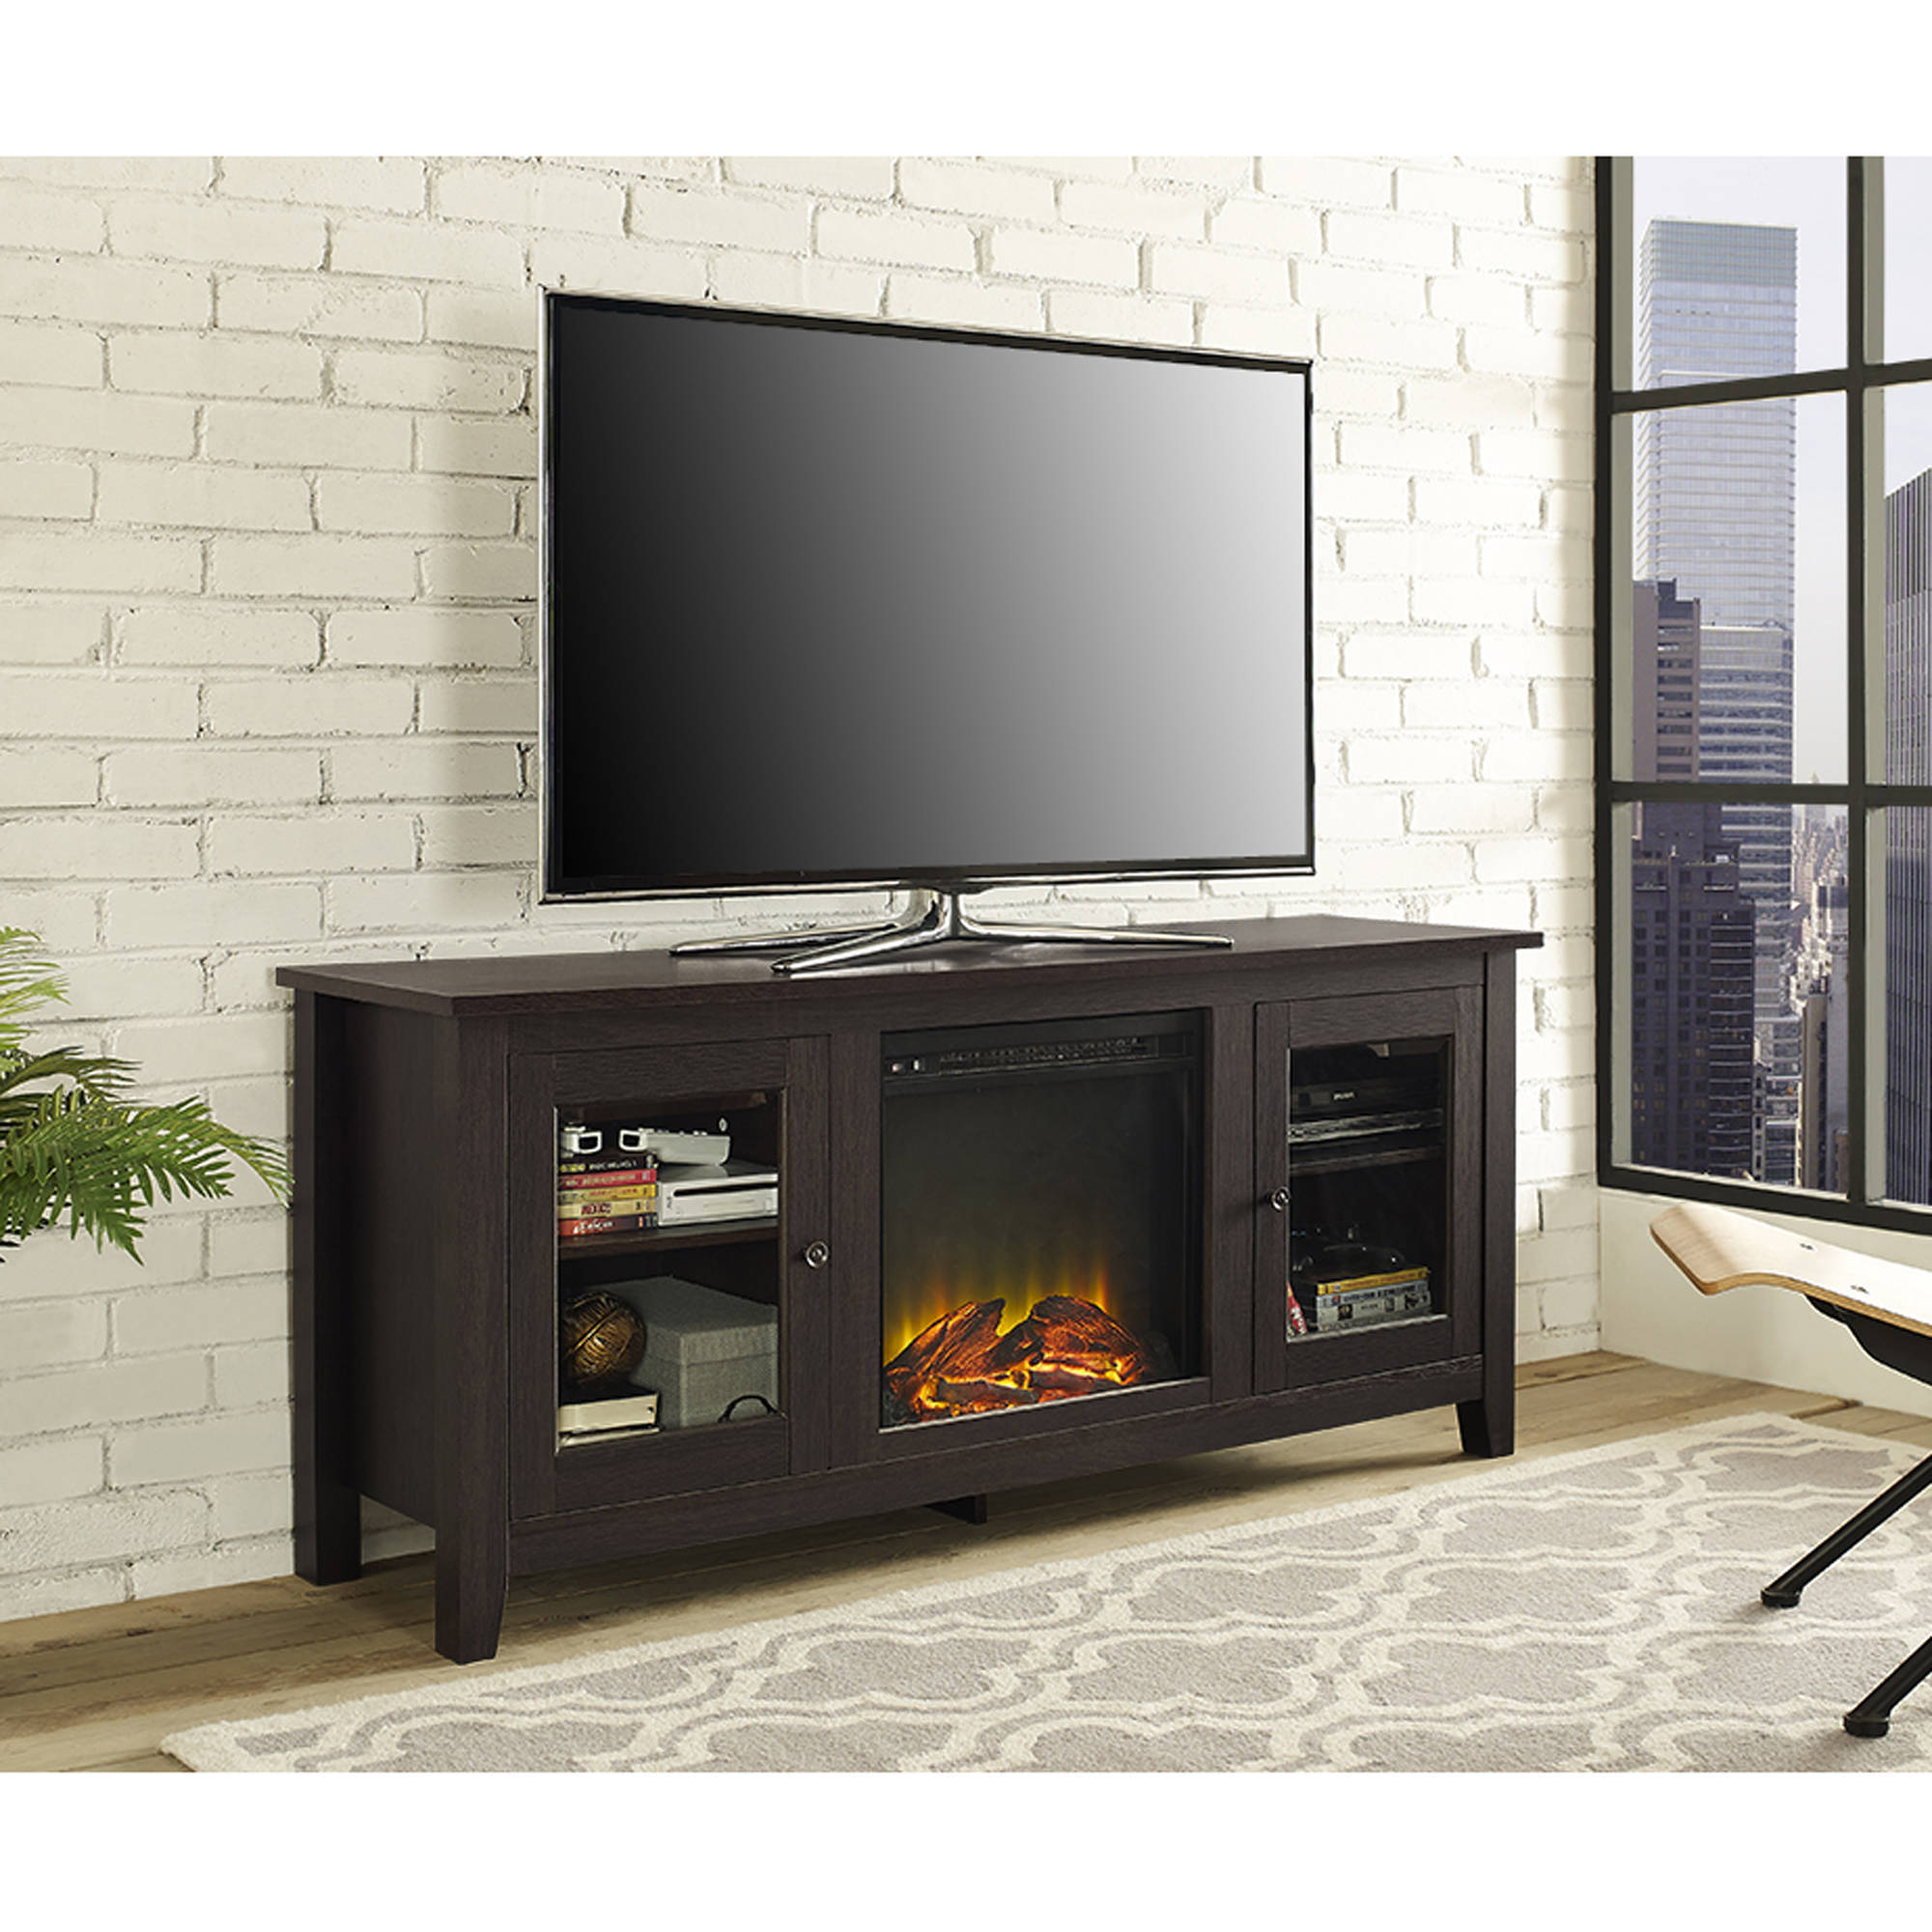 Ideas For Table Under Wall Mounted Tv Novocom Top